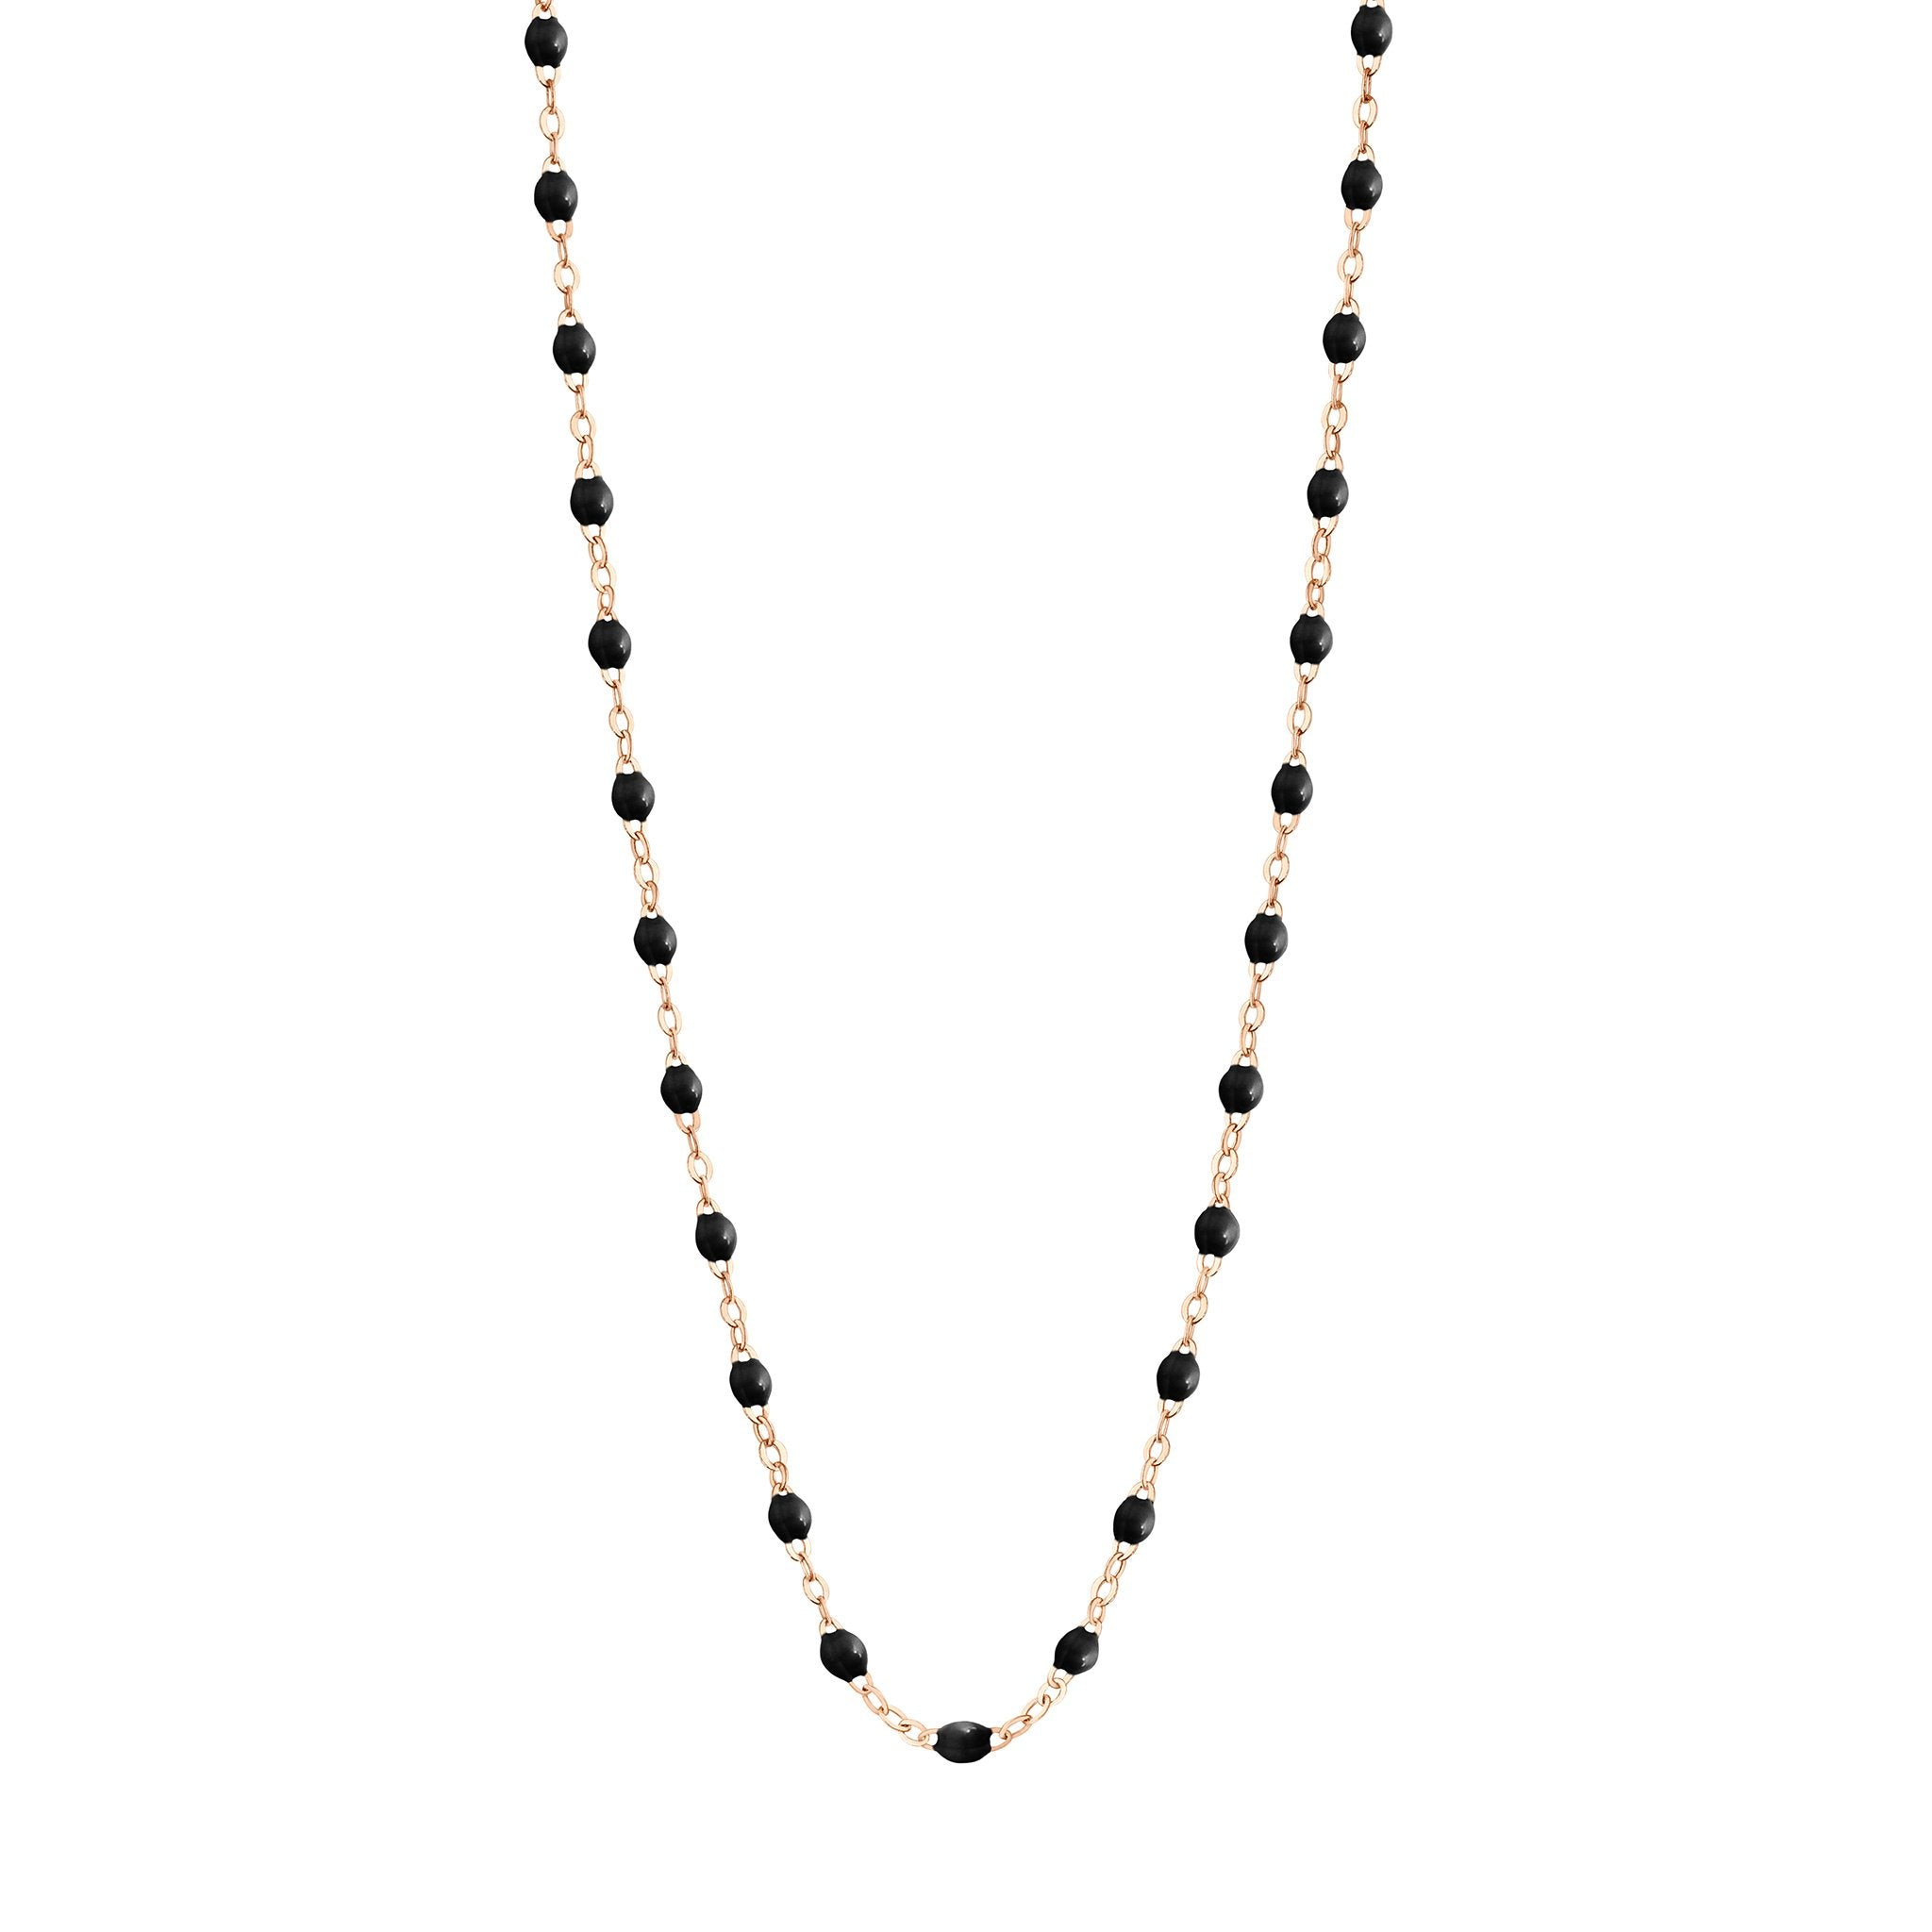 Gigi Clozeau - Classic Gigi Black necklace, Rose Gold, 19.7""